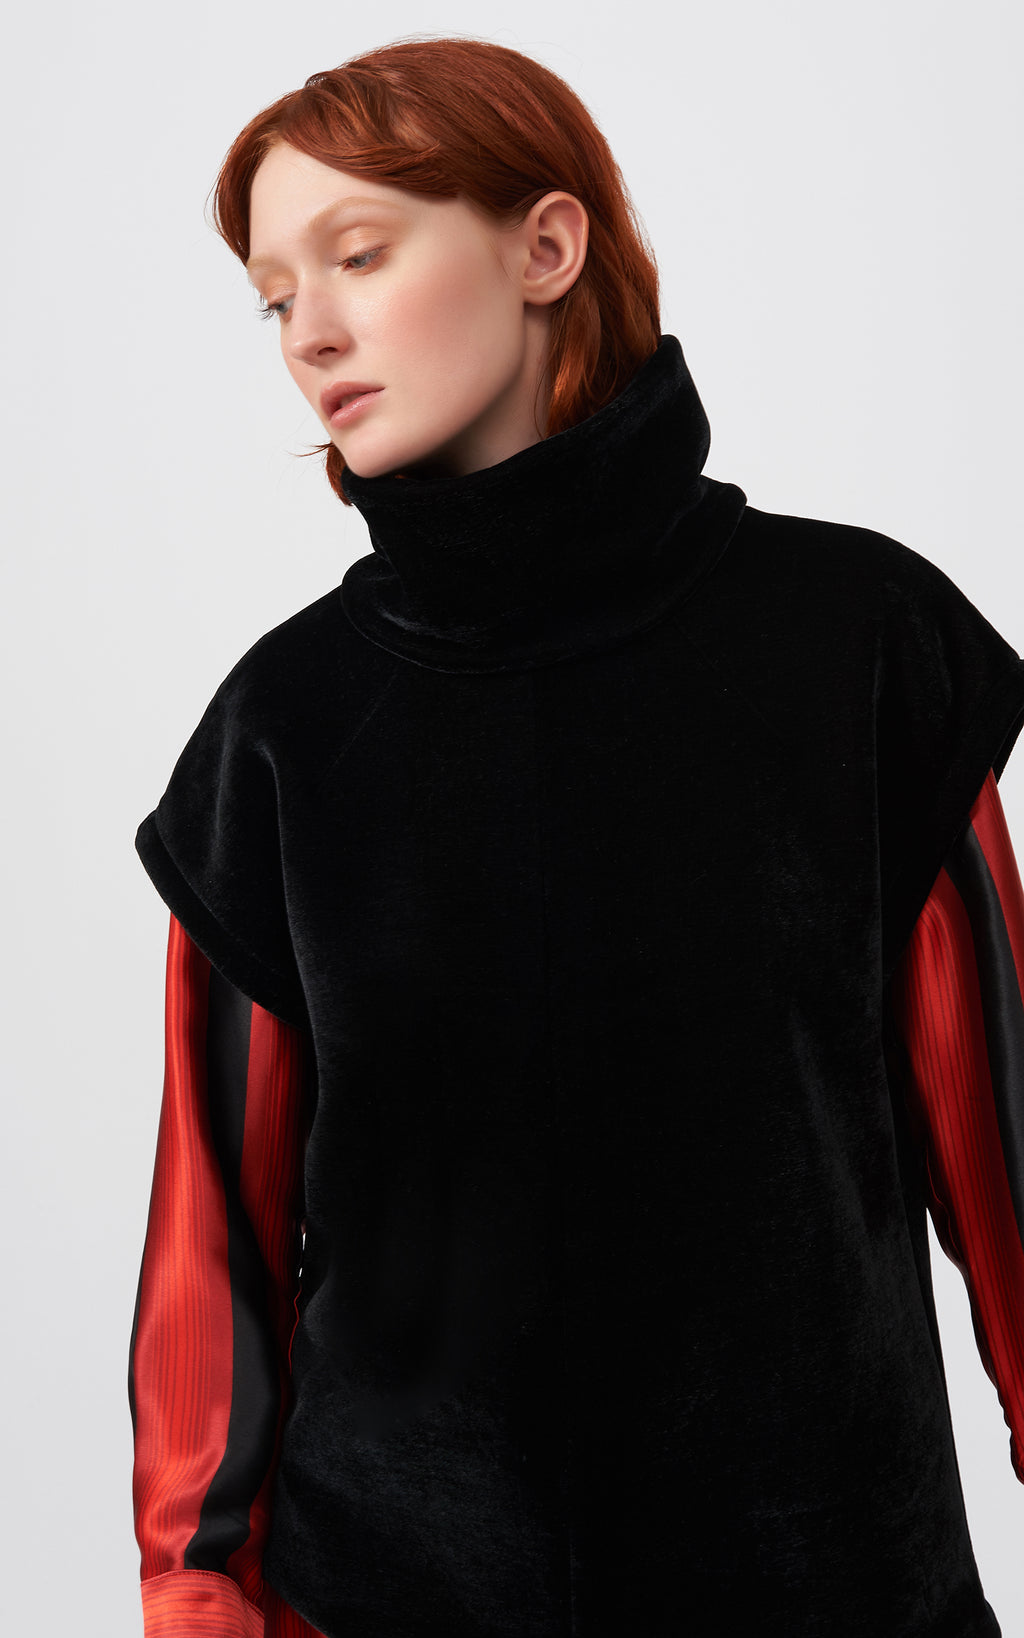 VELVET SEAM TURTLENECK